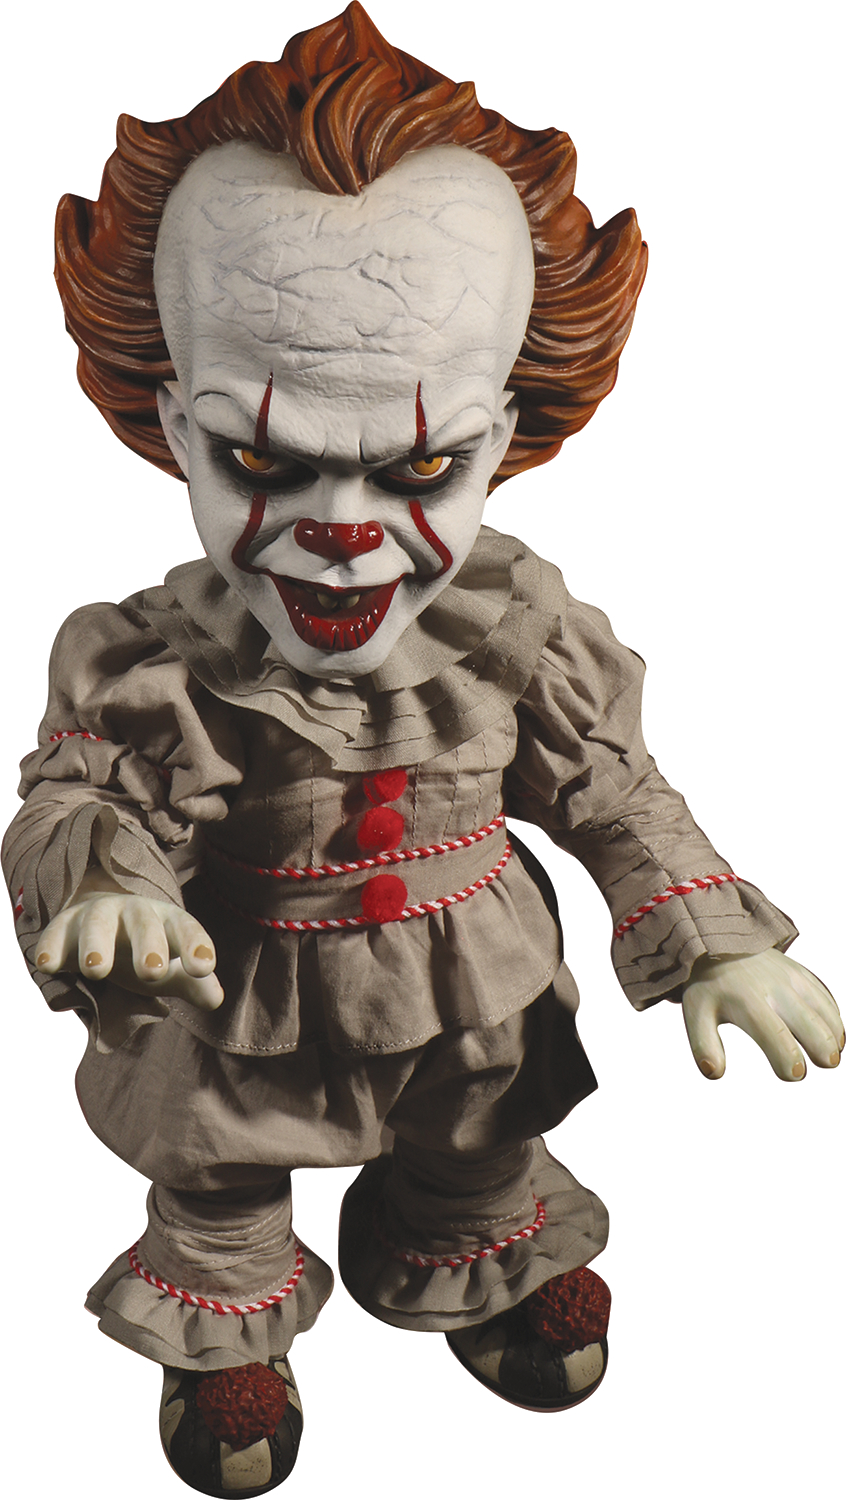 IT 2017 15IN MEGA SCALE FIG